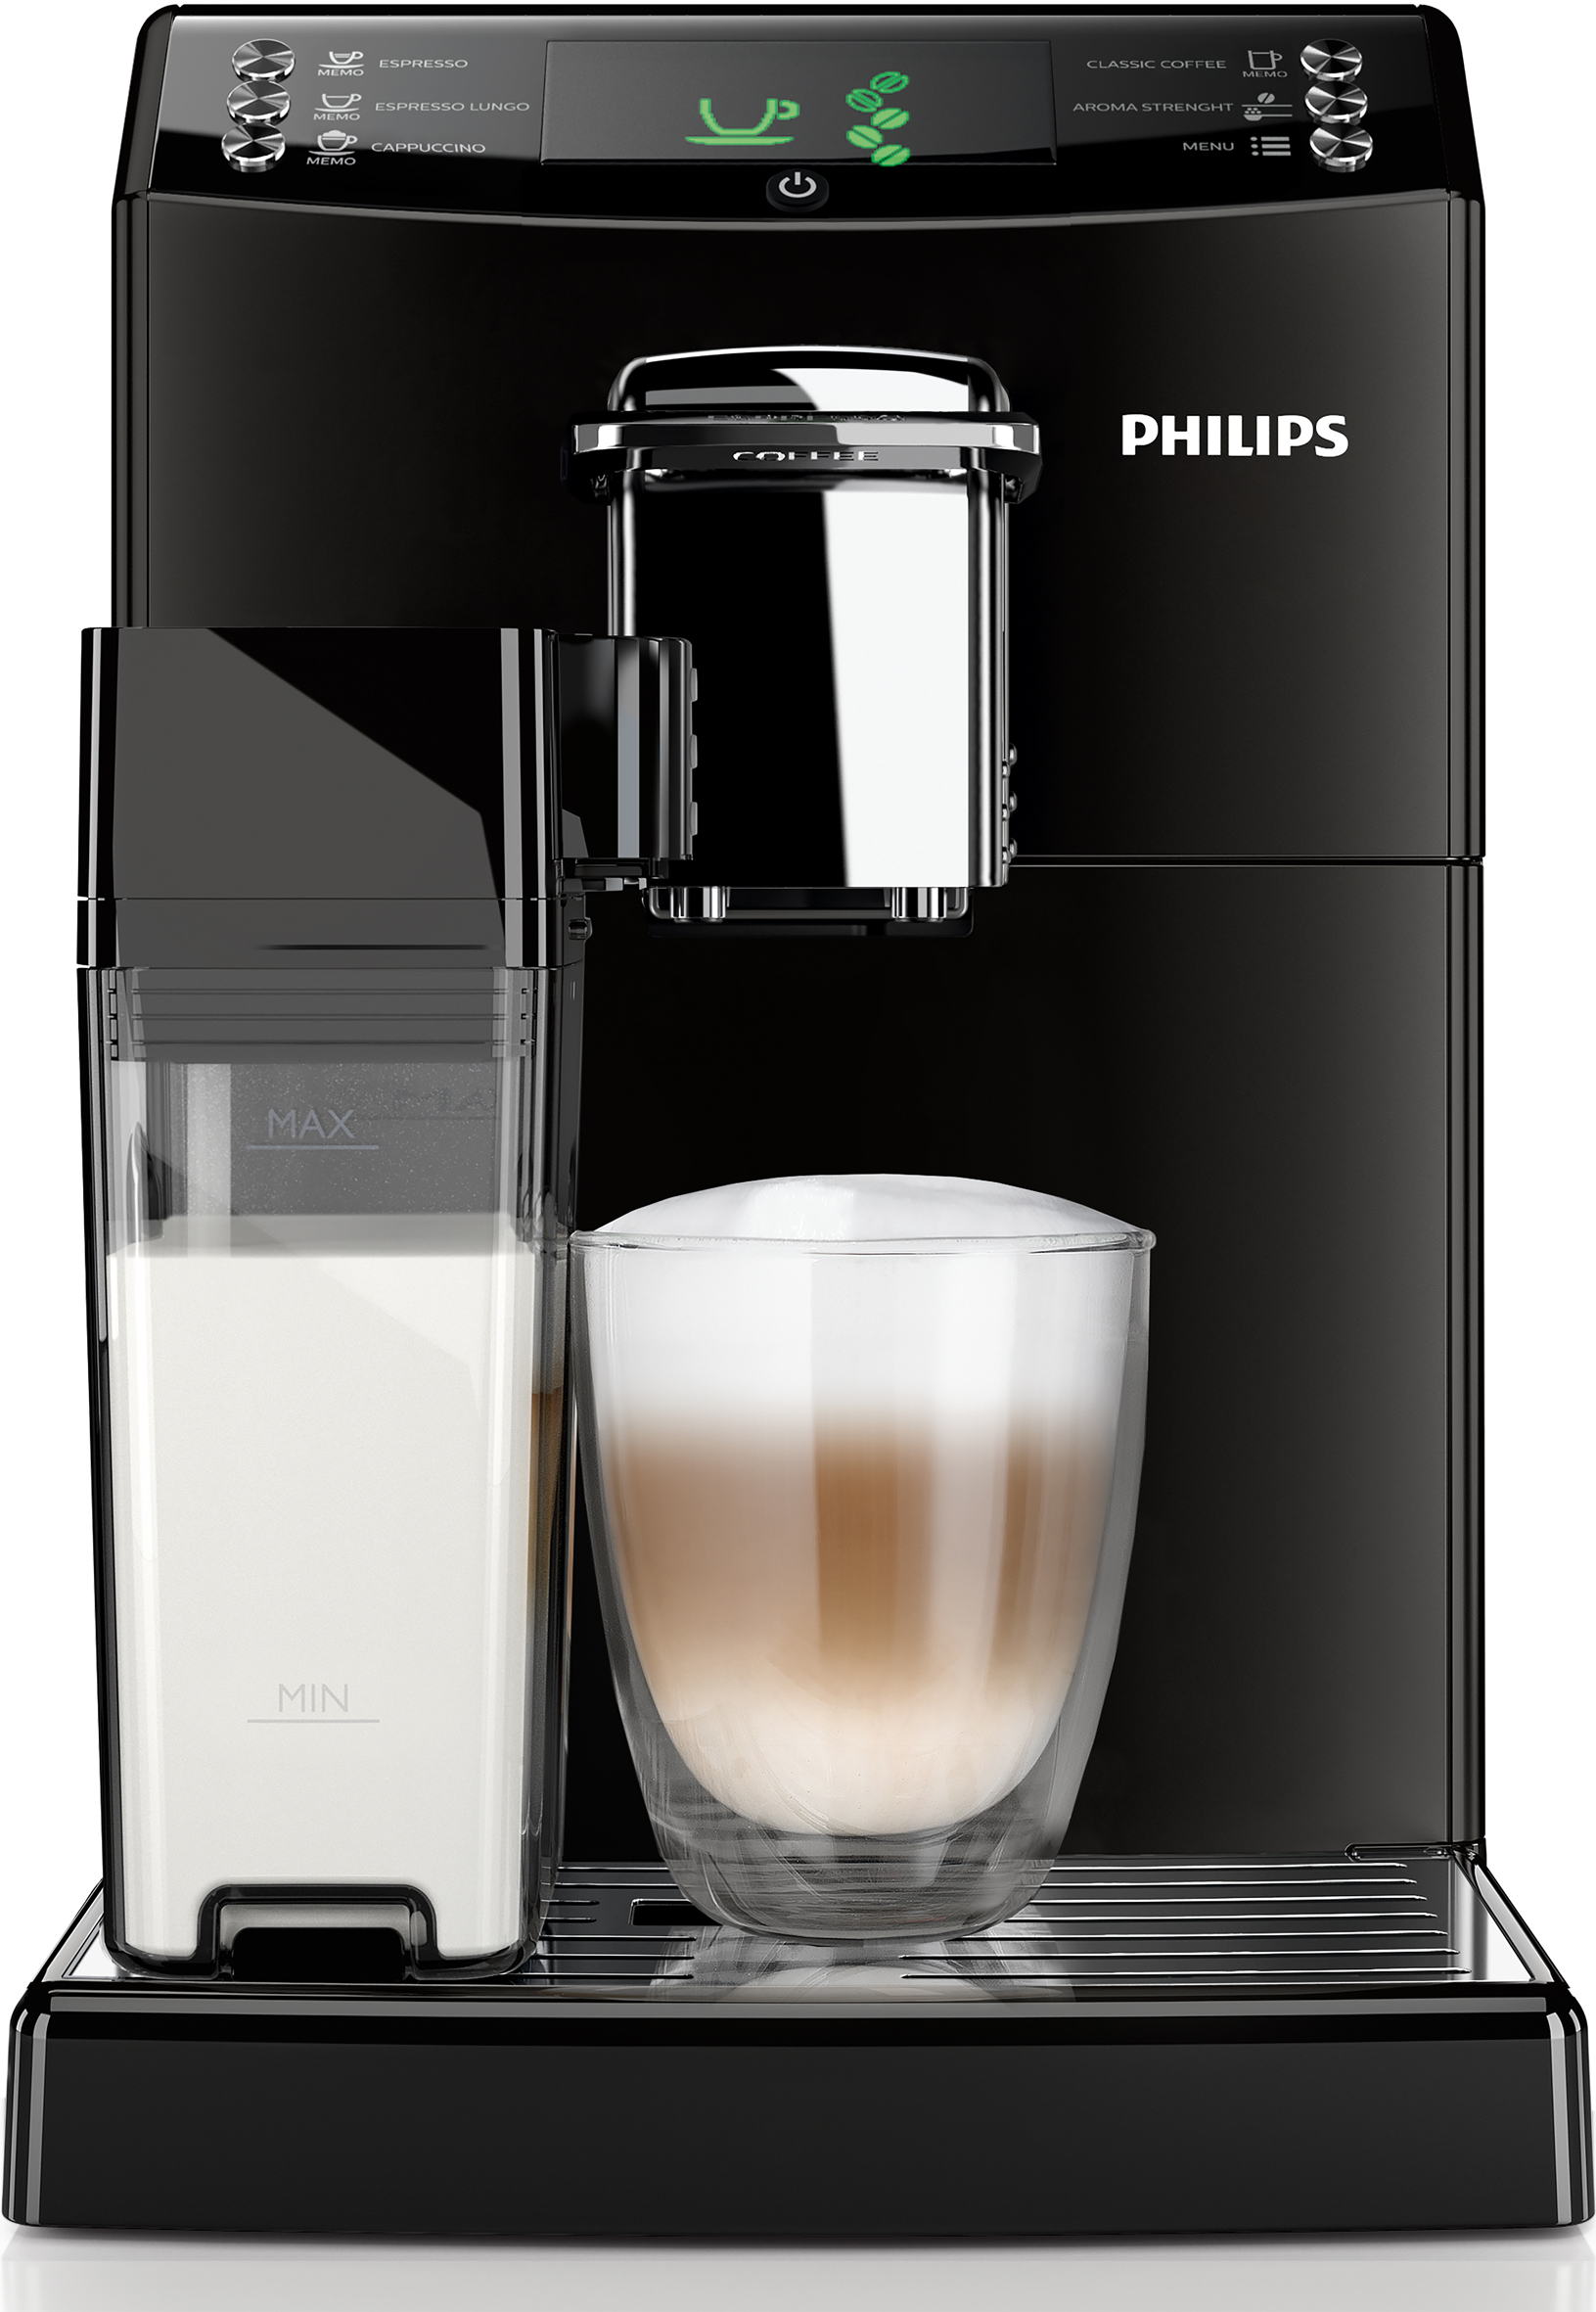 philips kaffeemaschine serie 4000 hd8847 01 mit karaffe zum aufsch umen von milch. Black Bedroom Furniture Sets. Home Design Ideas